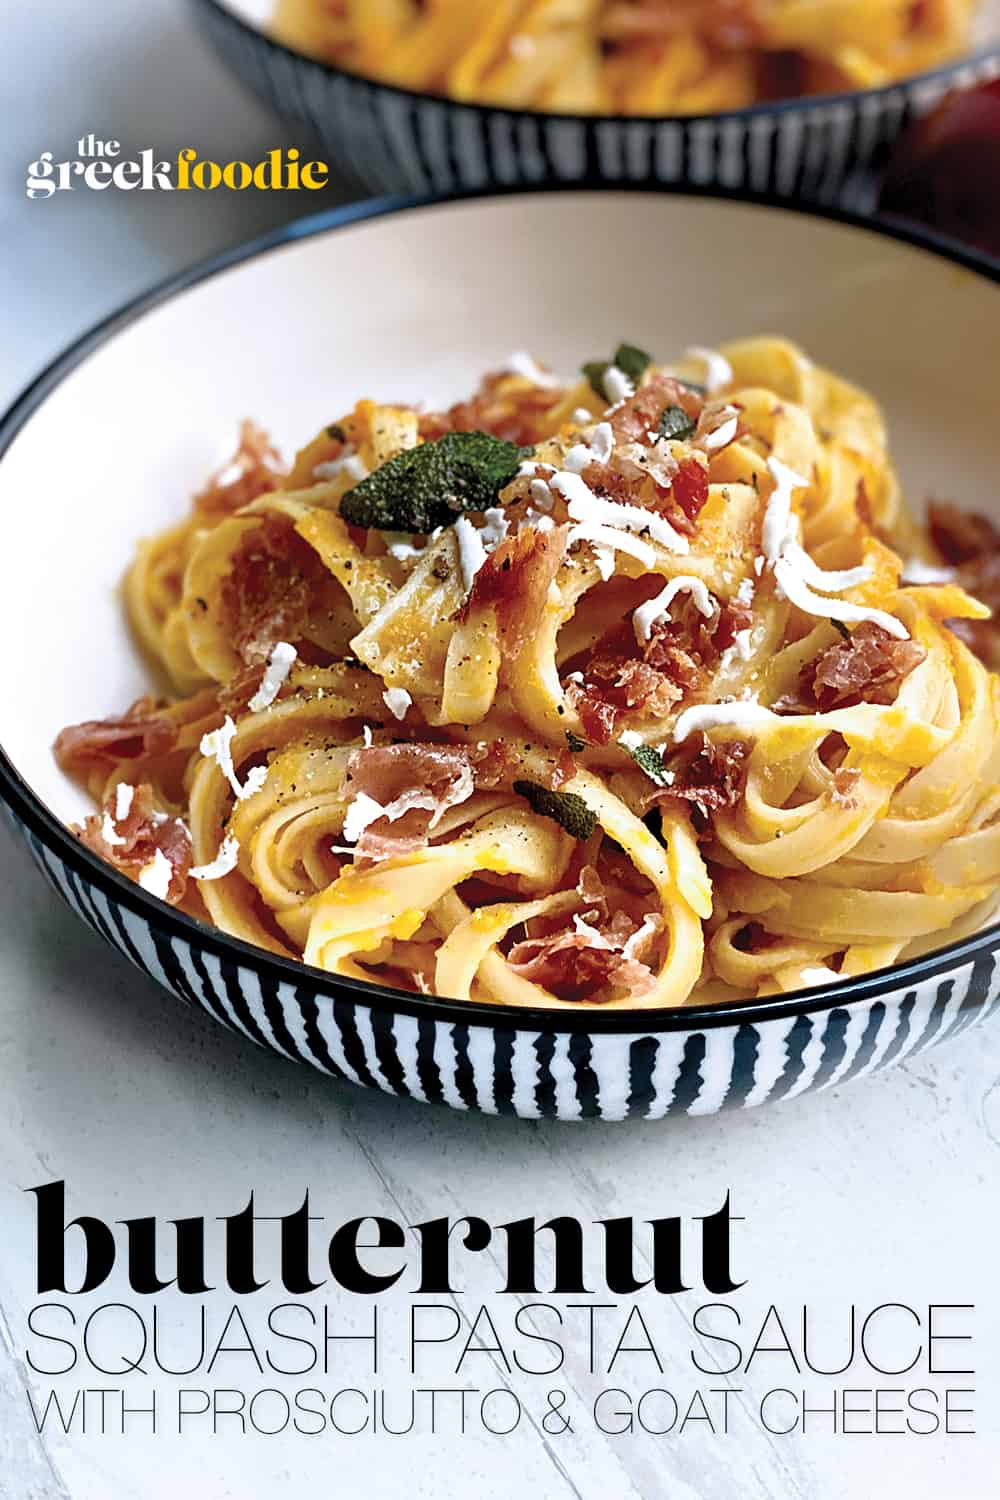 Butternut Squash Pasta Sauce with Prosciutto and Goat cheese